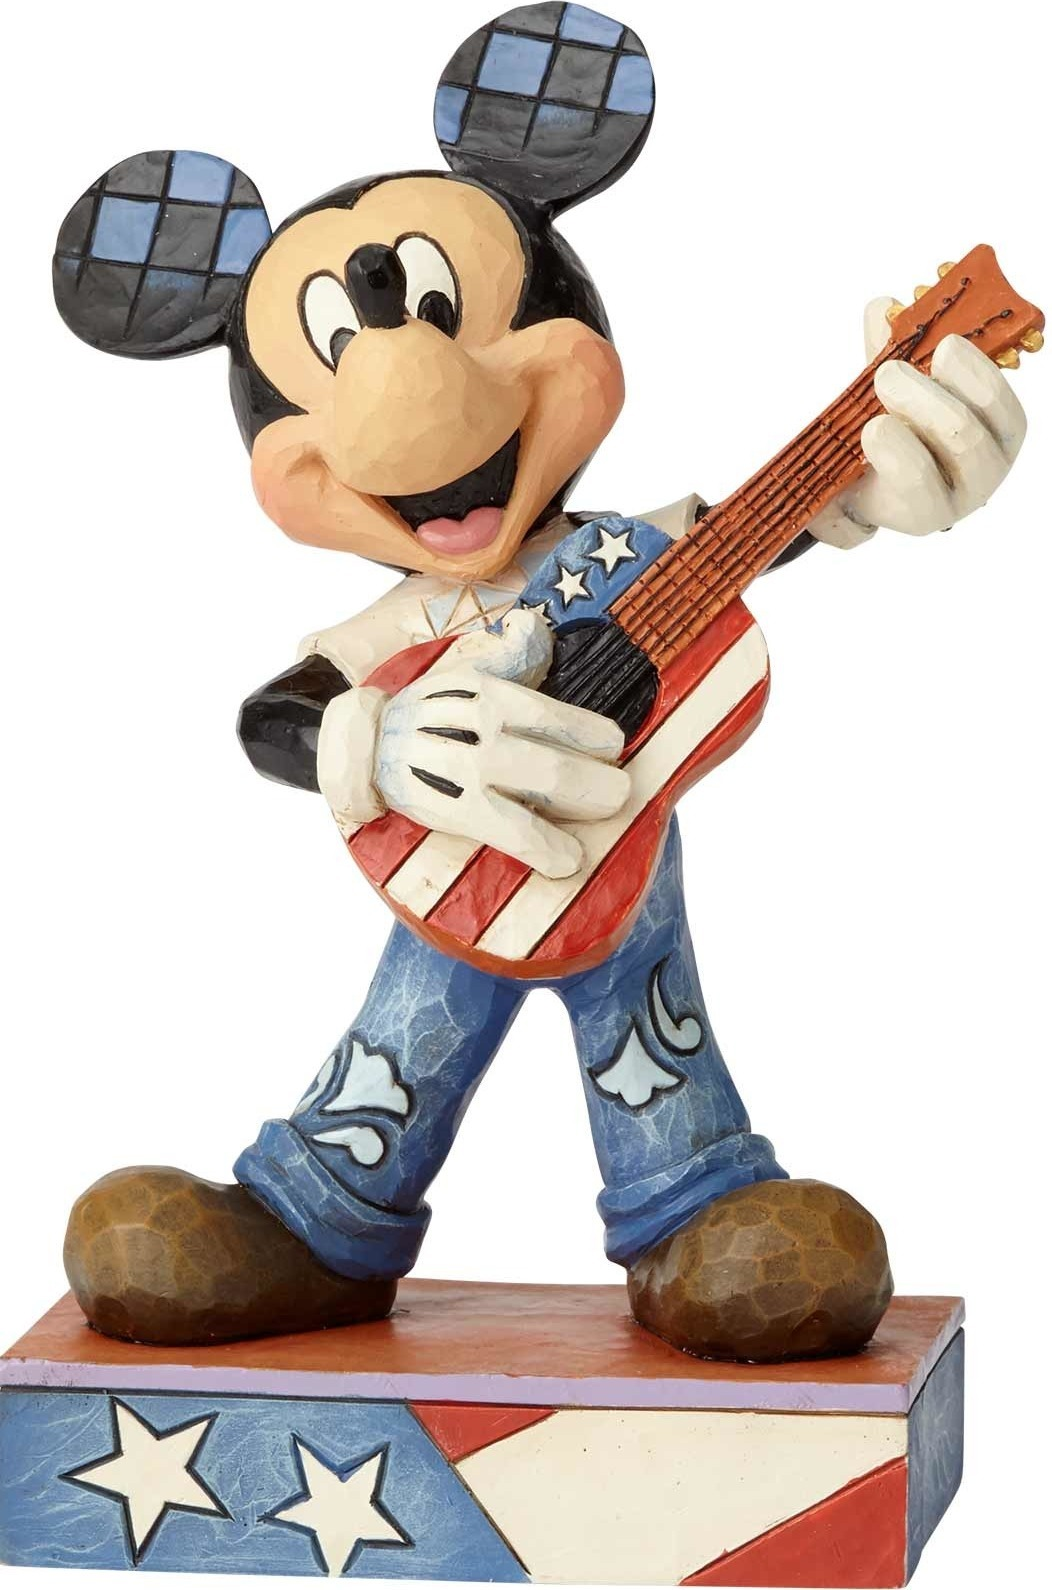 Disney Traditions by Jim Shore 6000968 Rock & Roll Mickey